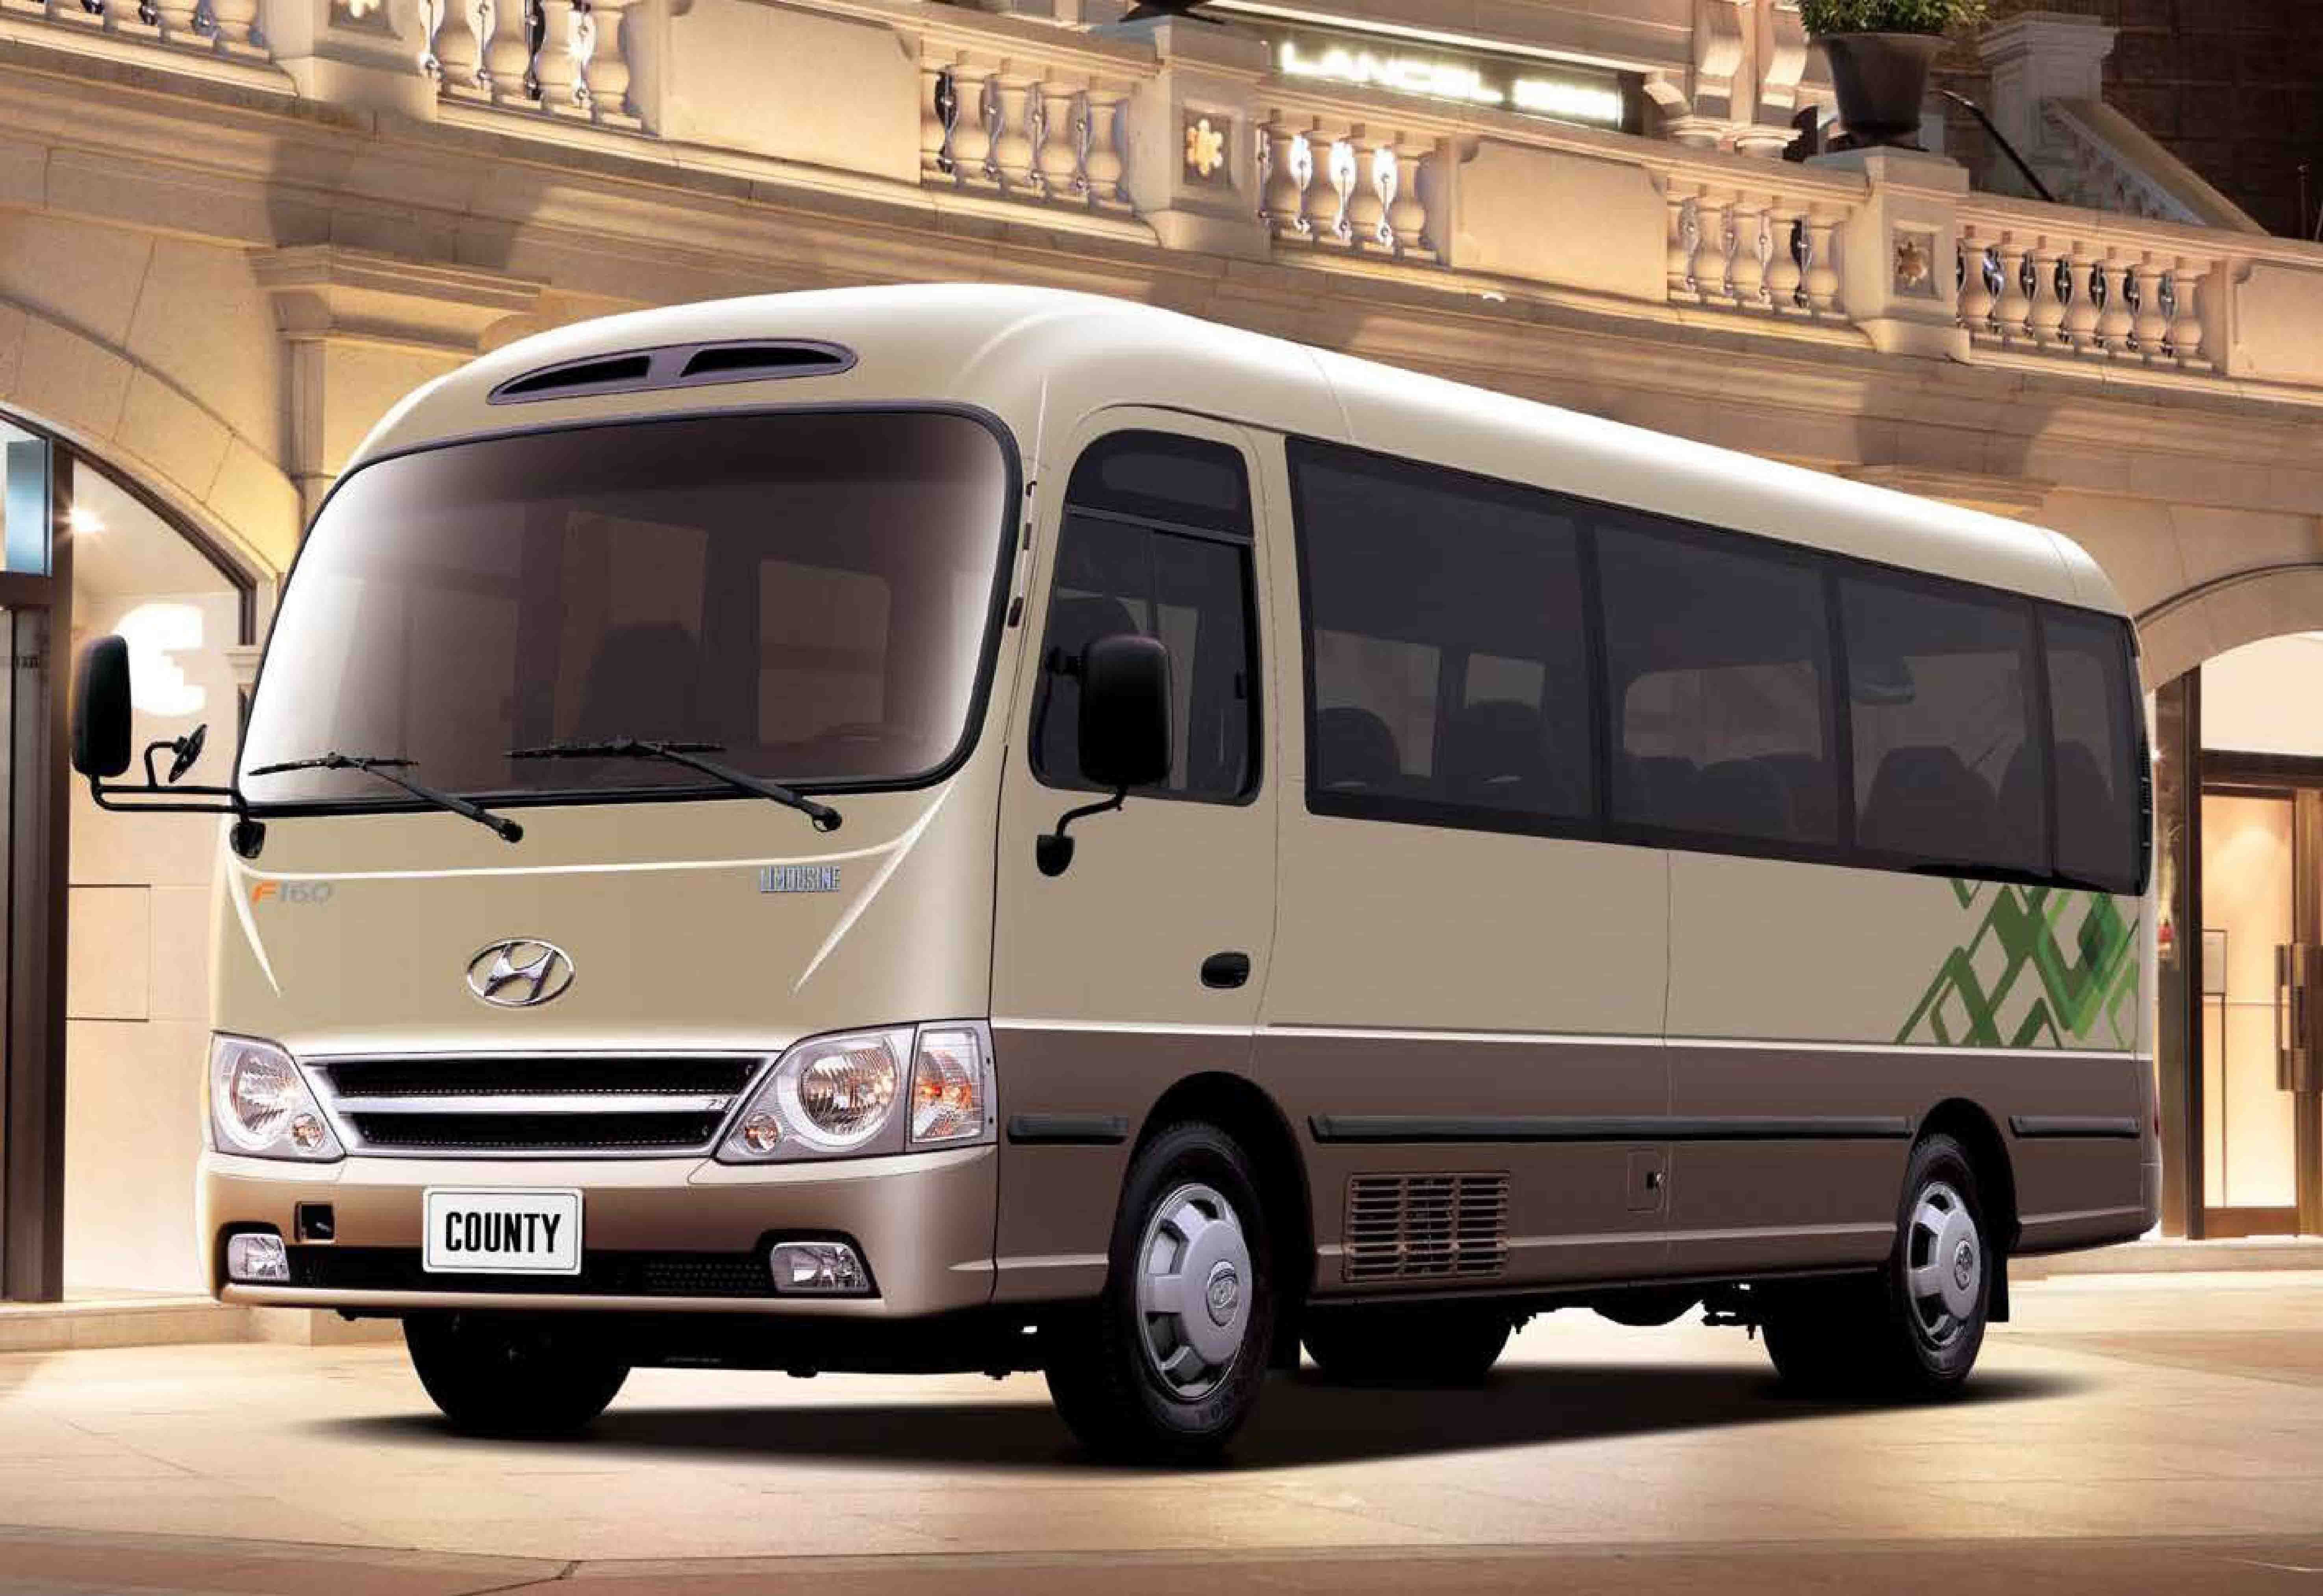 Used Buses 2000 Hyundai County (Short) for sale from S